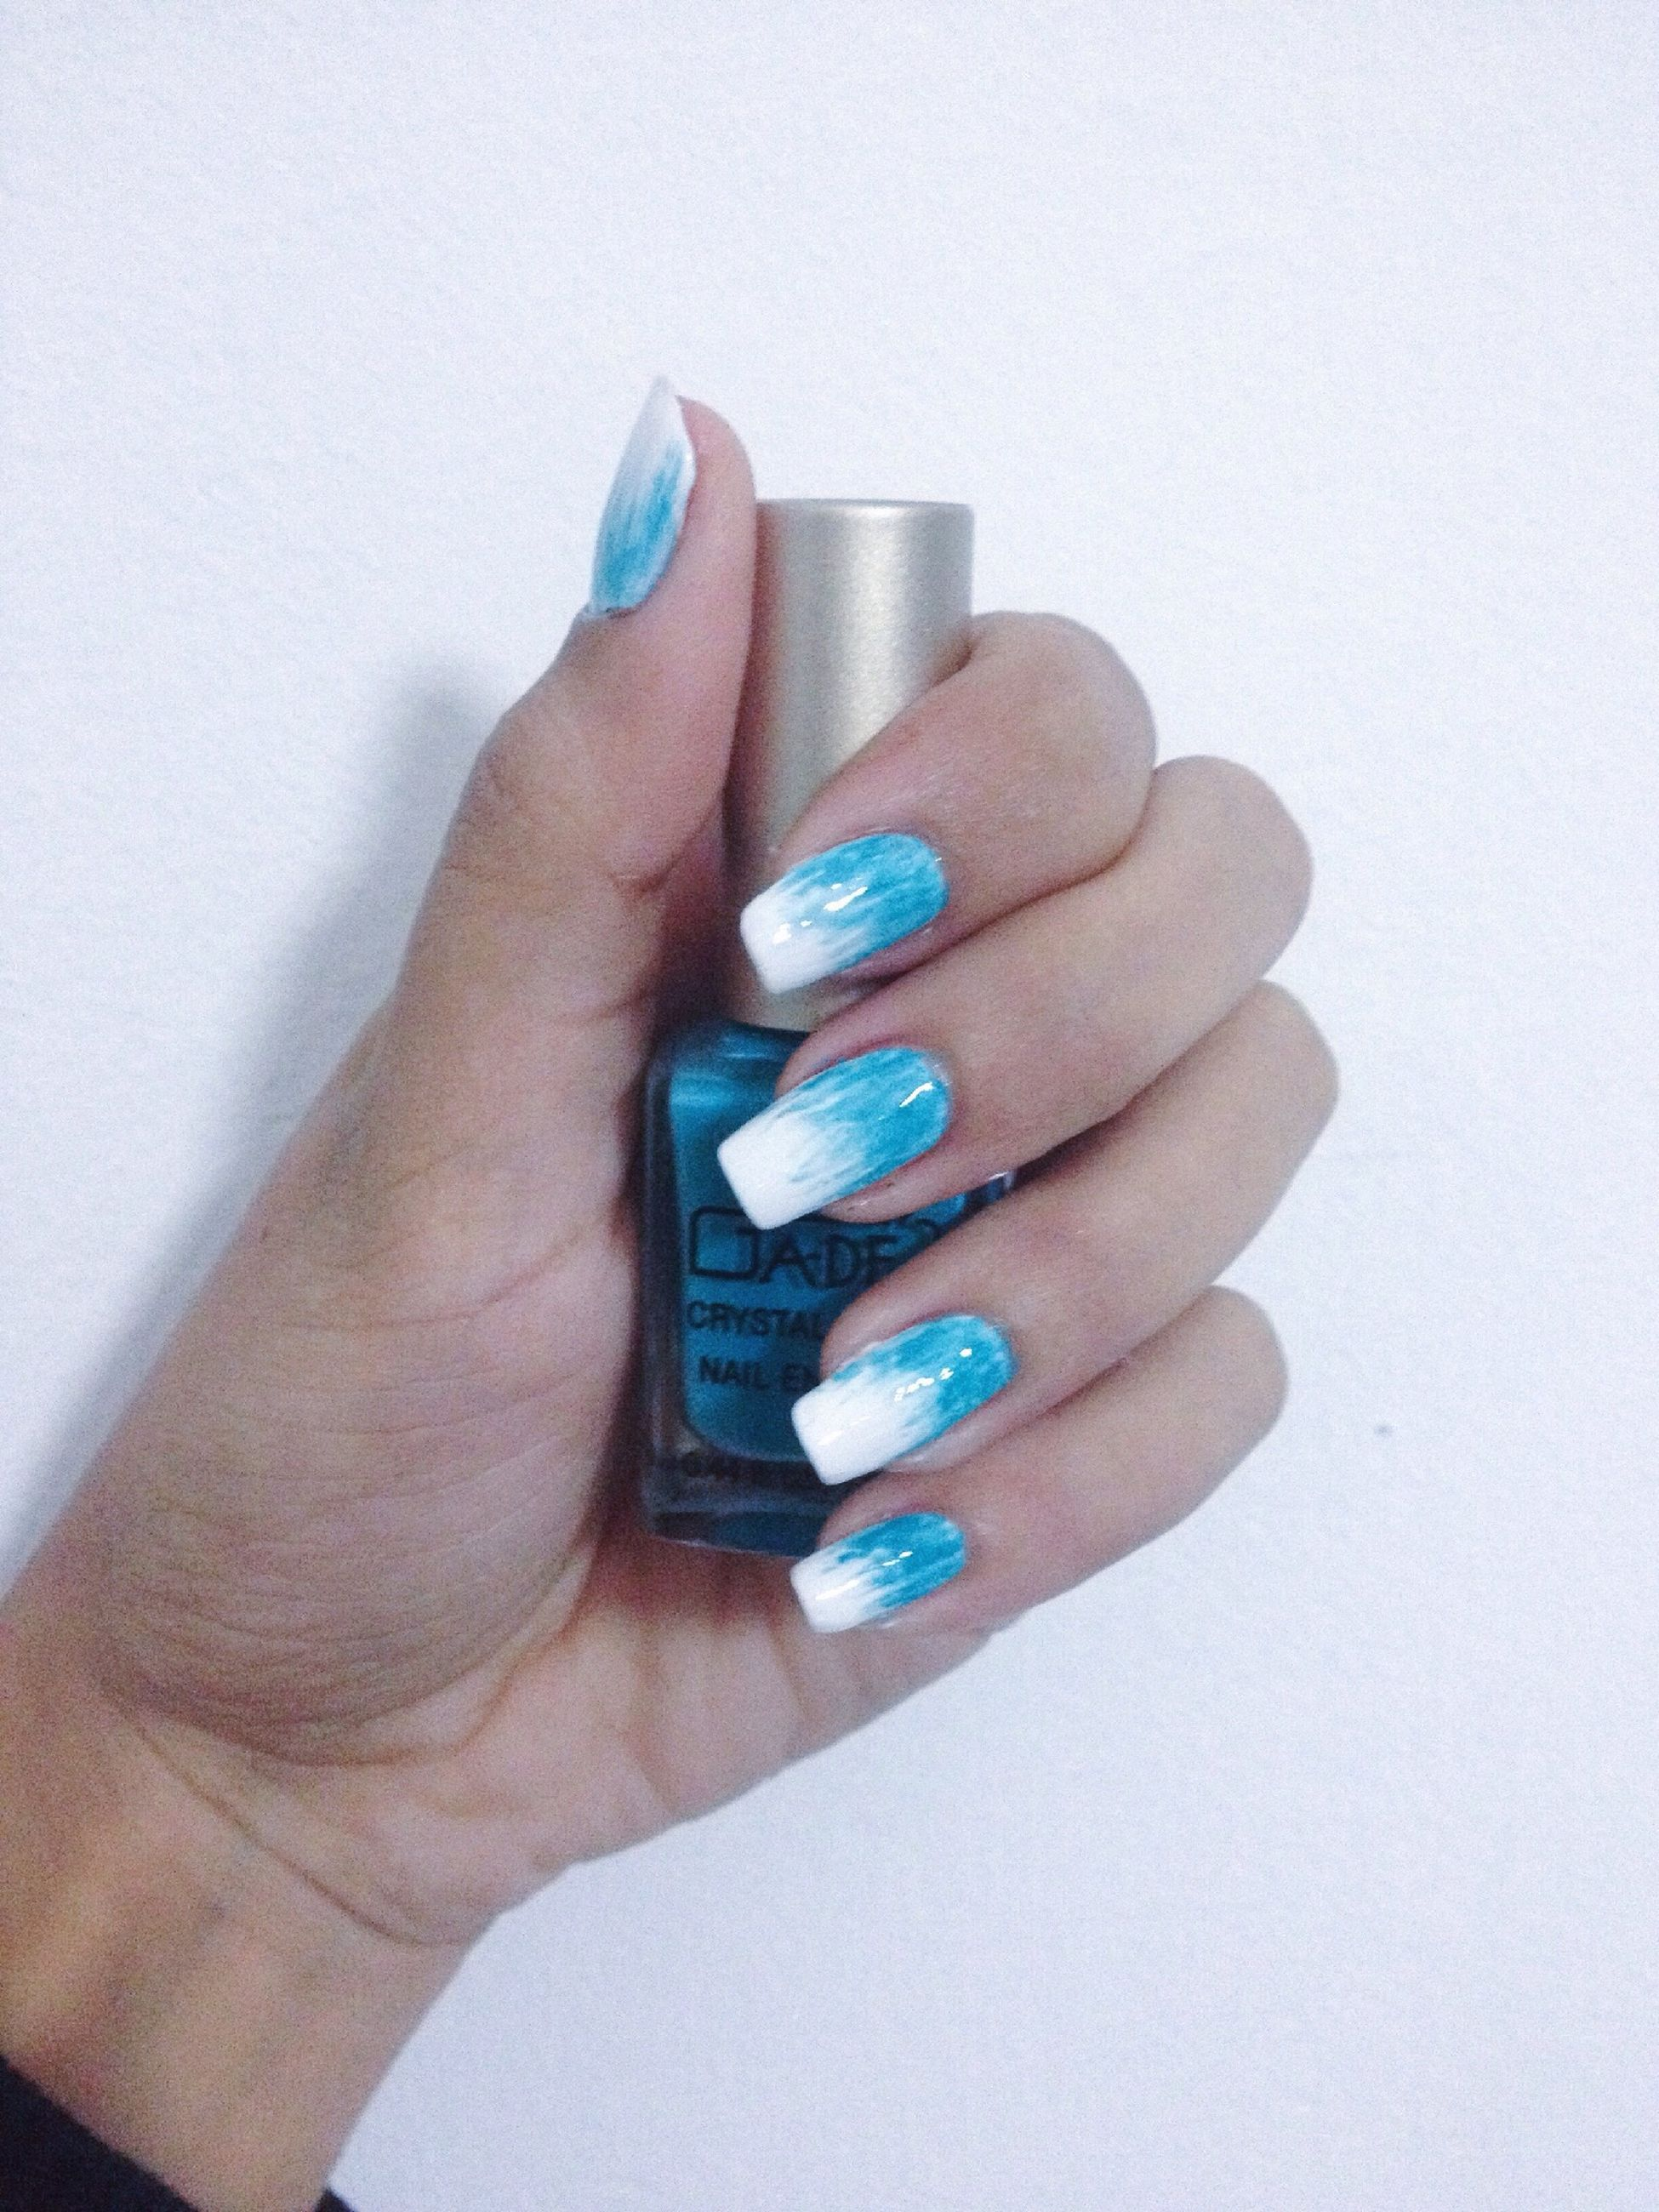 person, holding, part of, human finger, cropped, indoors, close-up, personal perspective, studio shot, unrecognizable person, multi colored, nail polish, white background, showing, leisure activity, high angle view, lifestyles